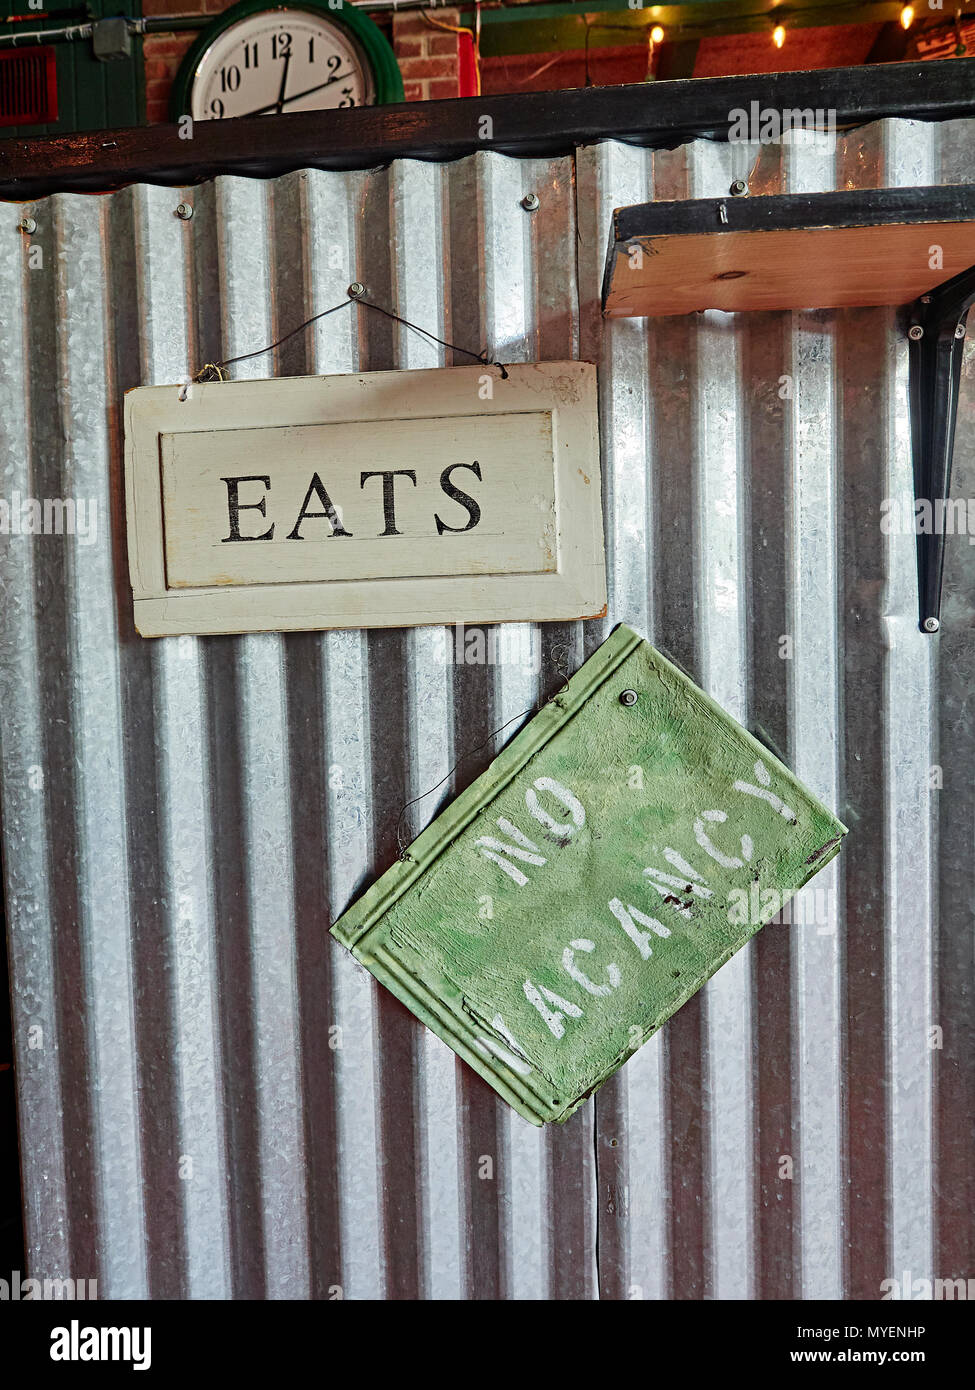 Eats and No Vacancy sign or signs hanging on restaurant wall for interior design in a hip college town restaurant in Auburn Alabama, USA. - Stock Image